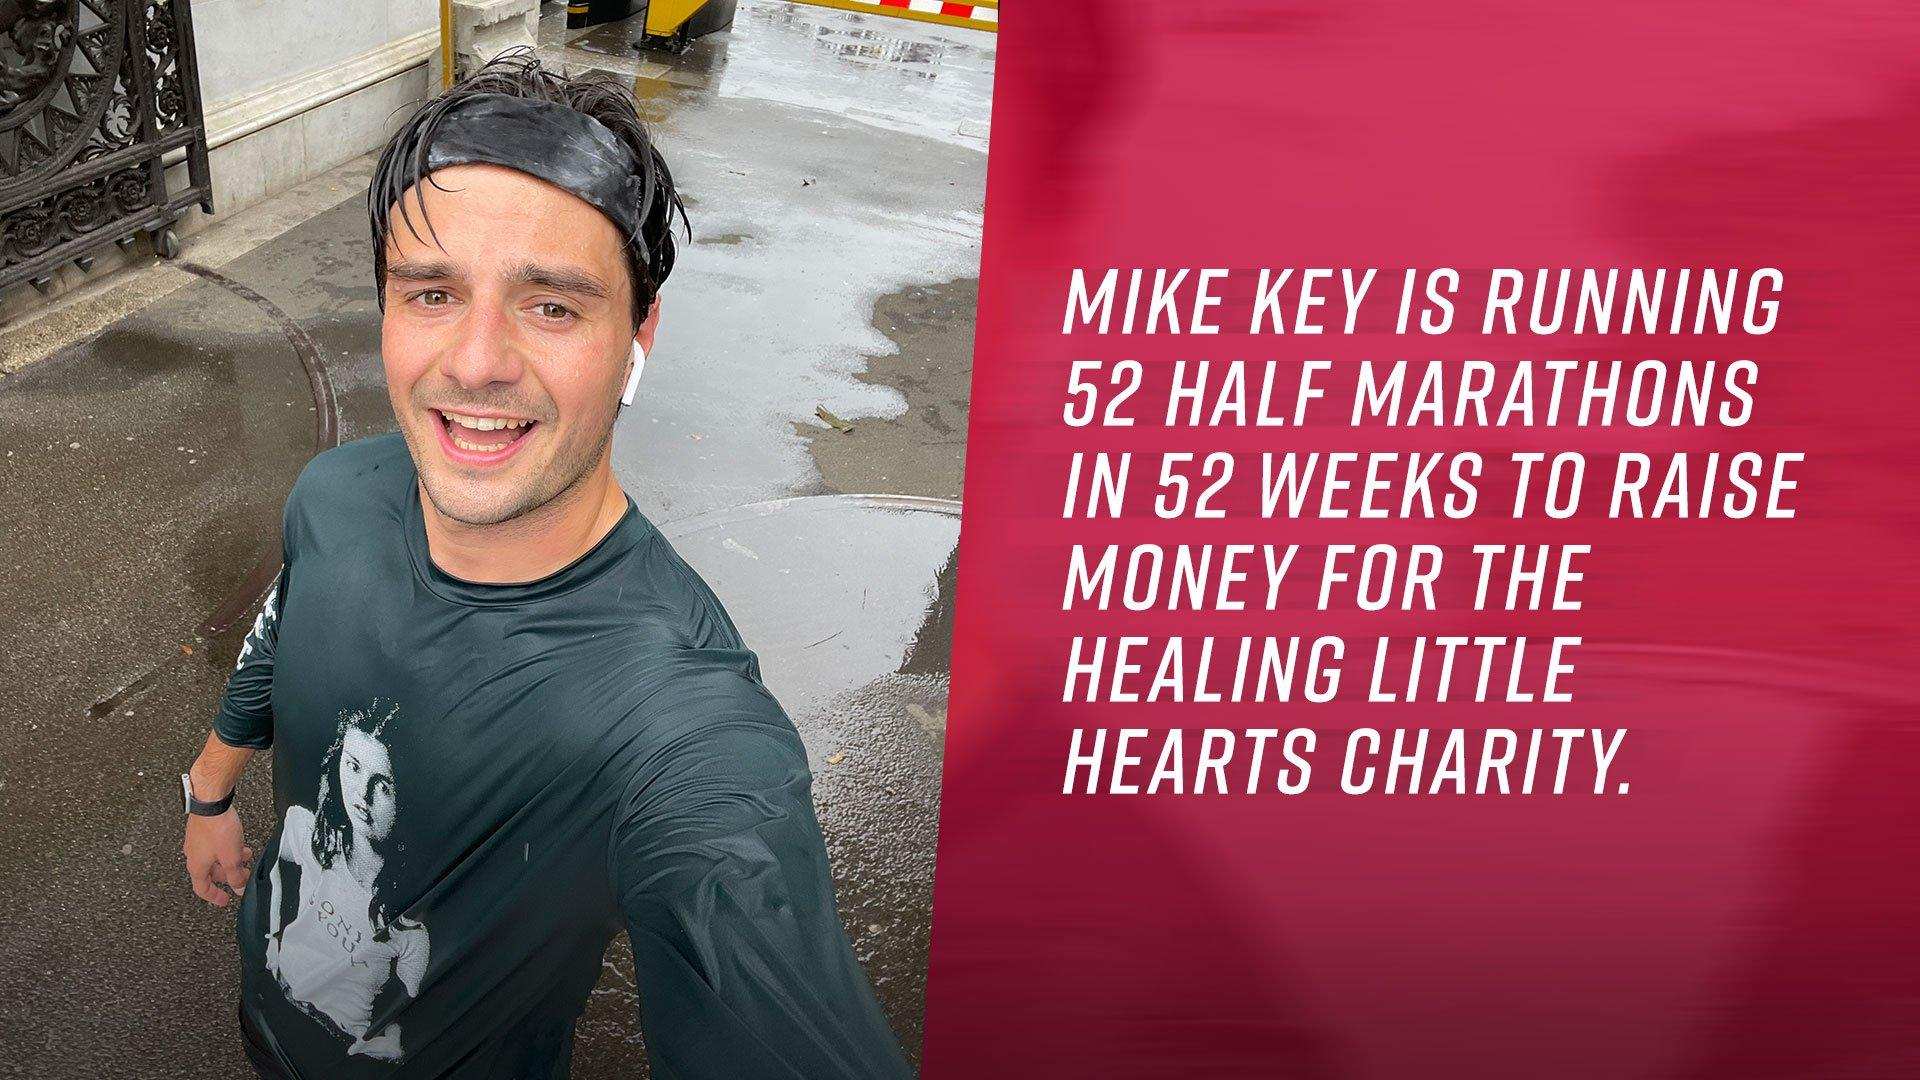 Mike Key is running 52 half marathons in 52 weeks to raise money for the Healing Little Hearts charity.